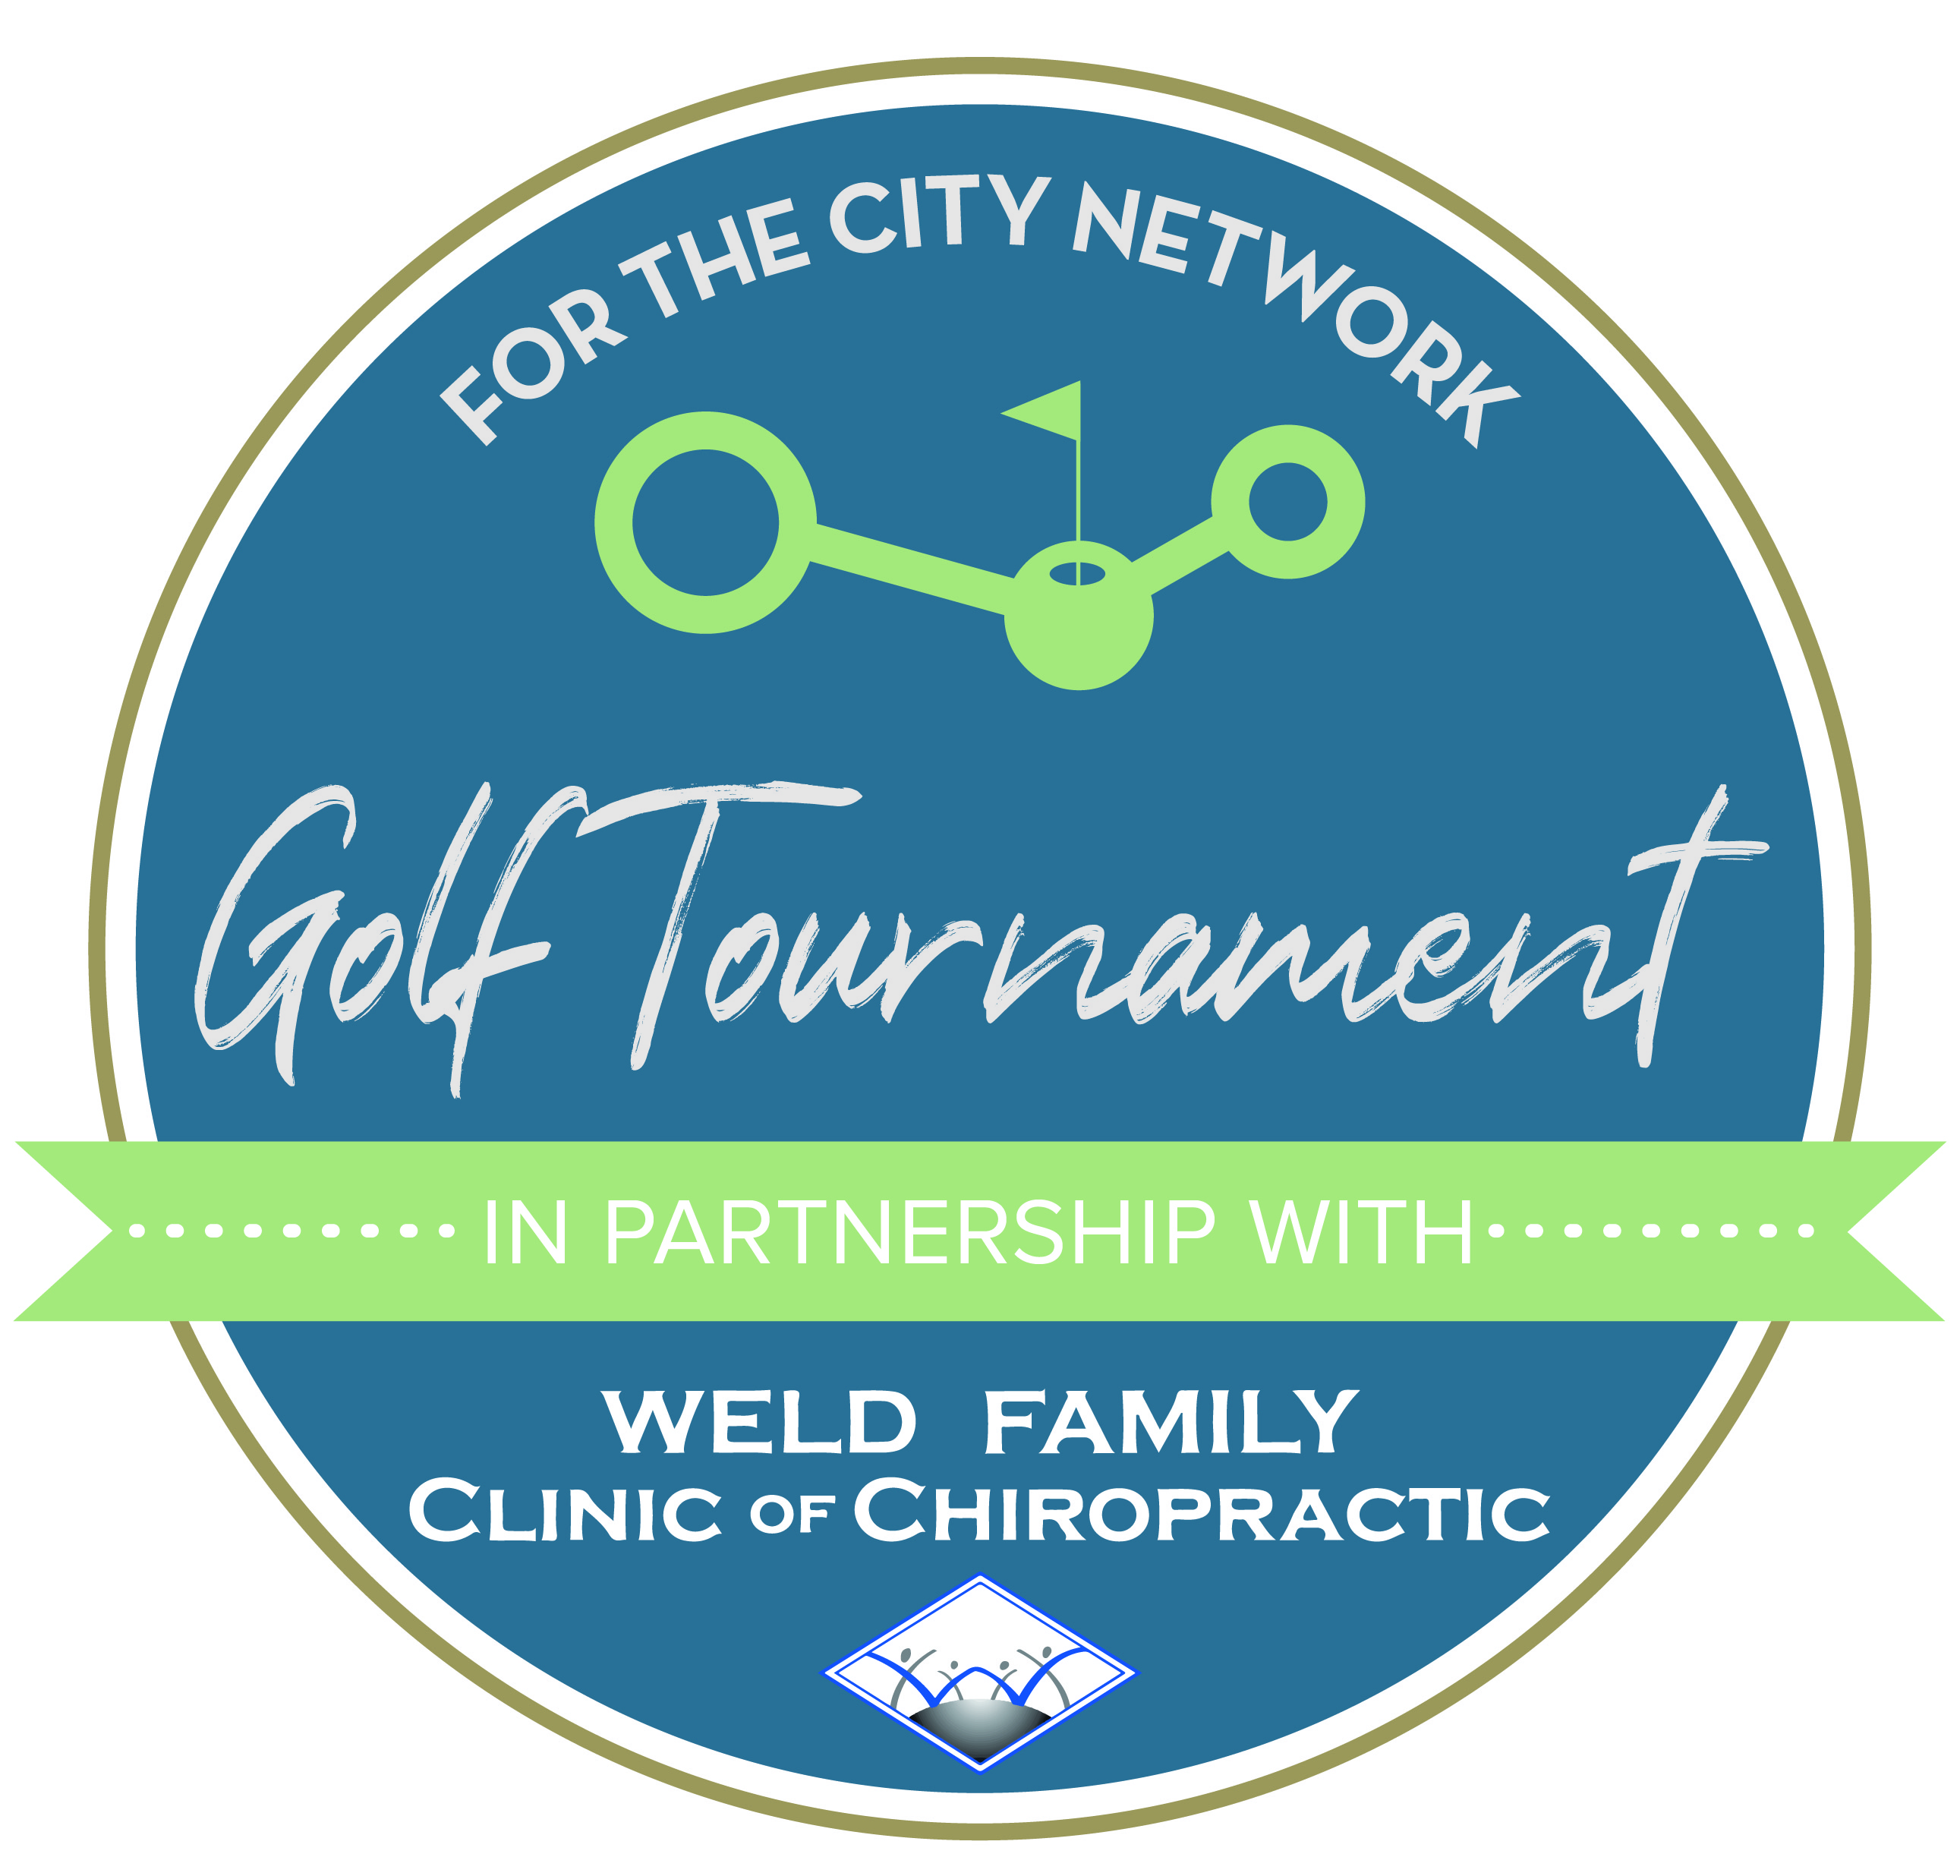 For The City Network in Partnership with Weld Family Clinic of Chiropractic Golf Tournament logo